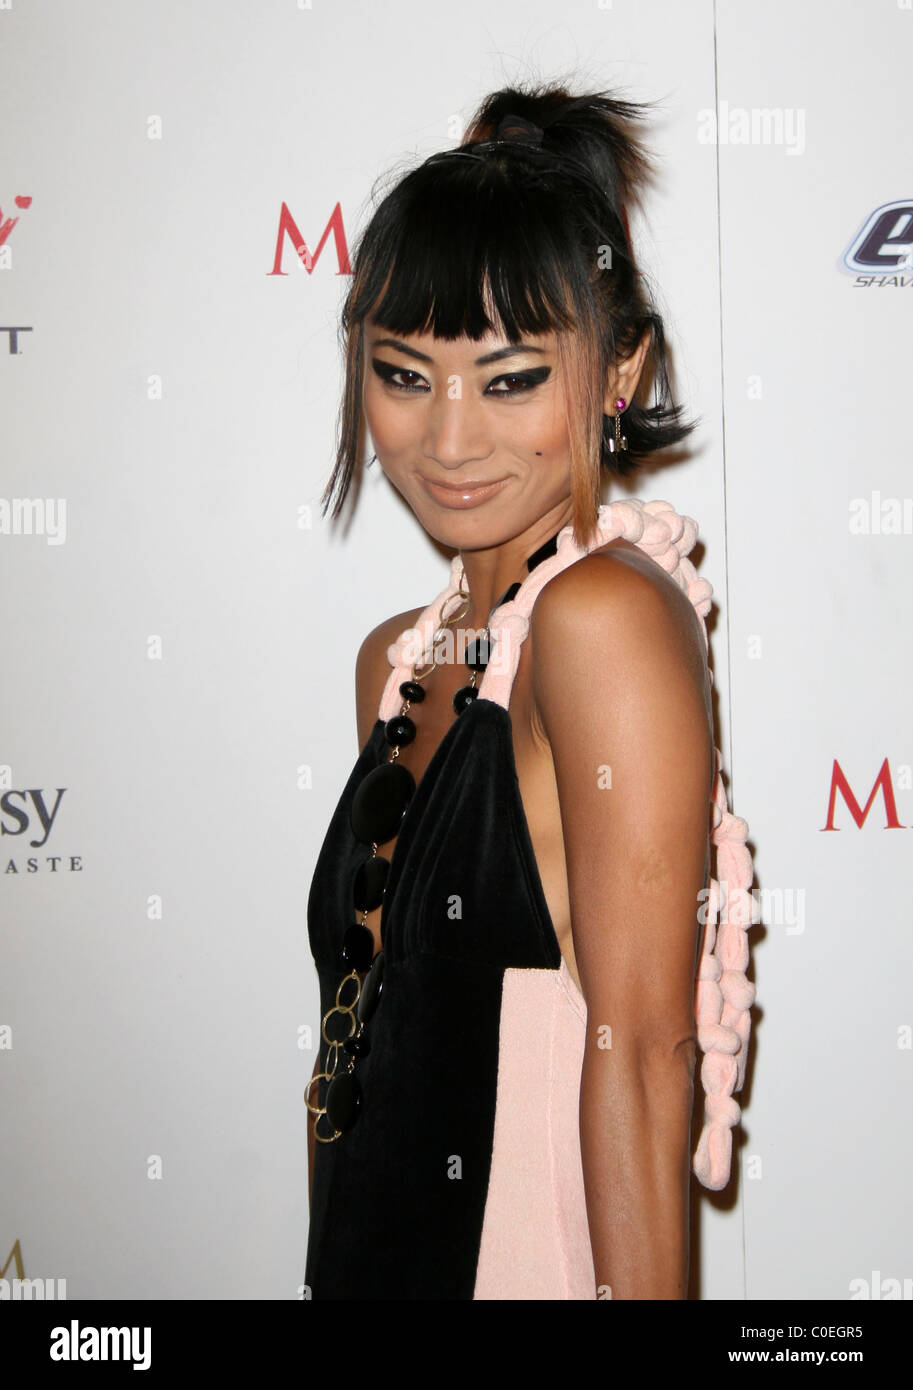 picture Bai Ling Is Still Kind Of Hot Looking. 2018-2019 celebrityes photos leaks!